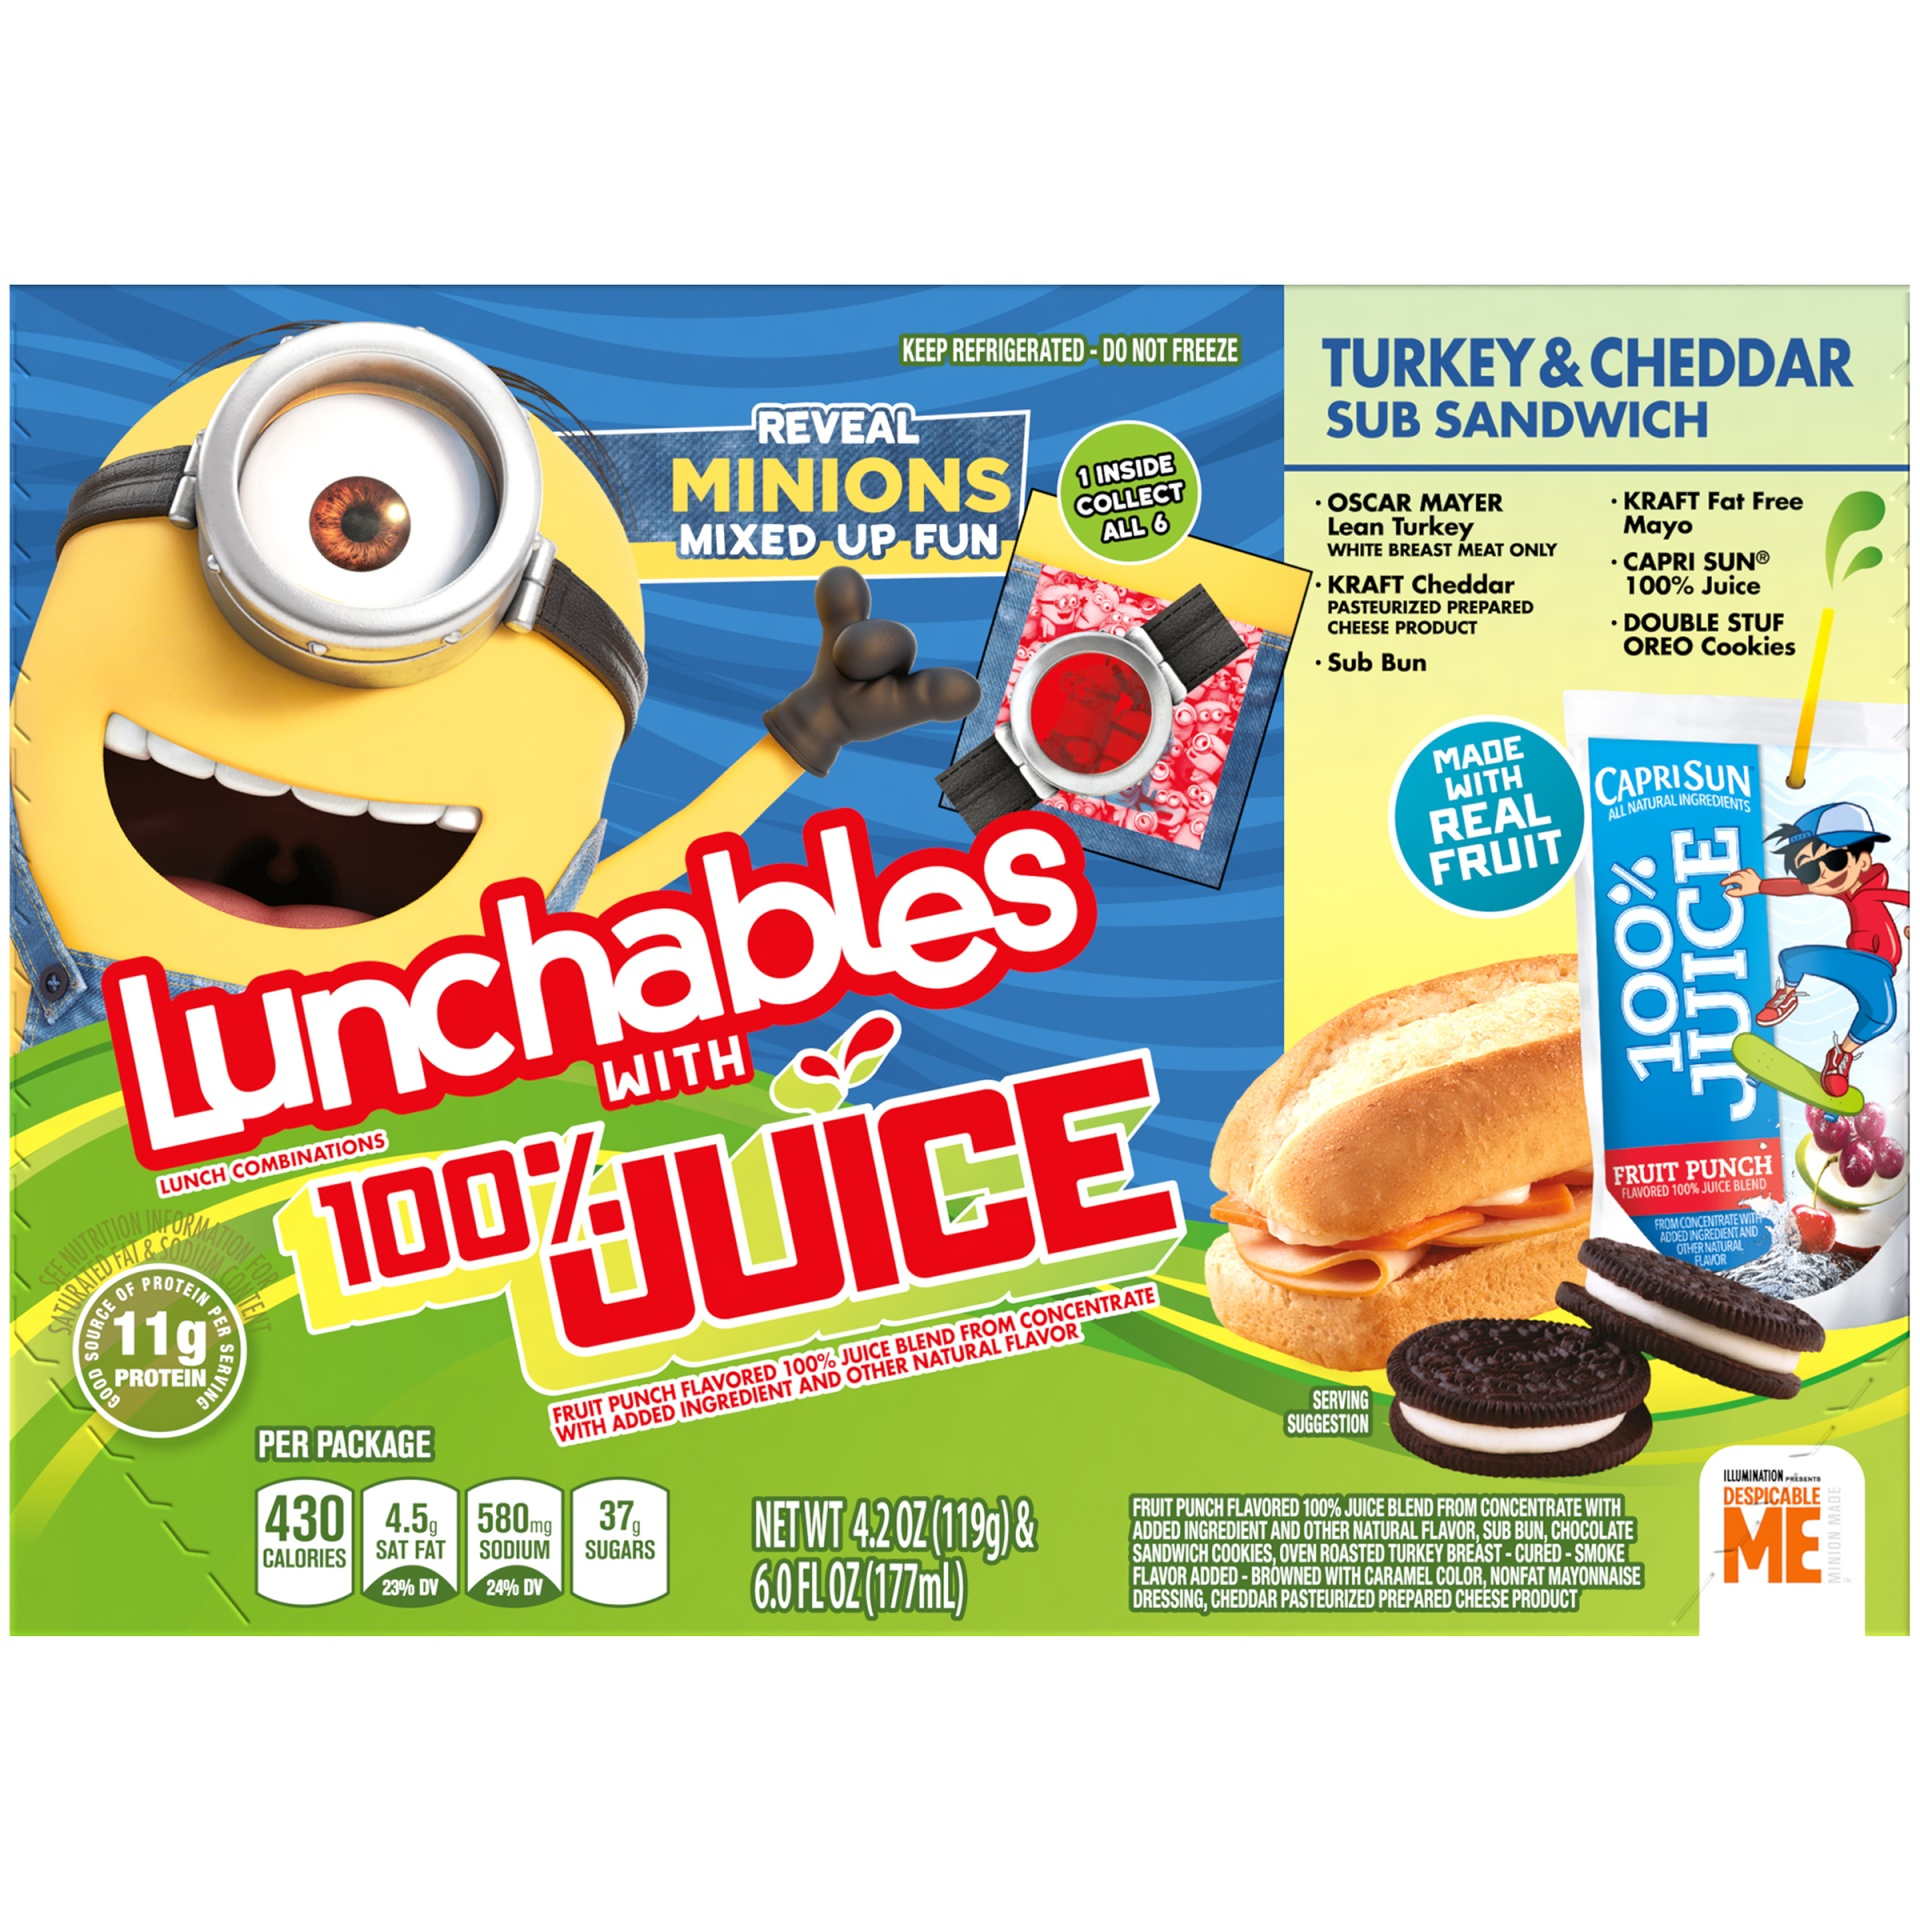 slide 2 of 8, Lunchables 100% Juice Turkey & Cheddar Sub Sandwich,